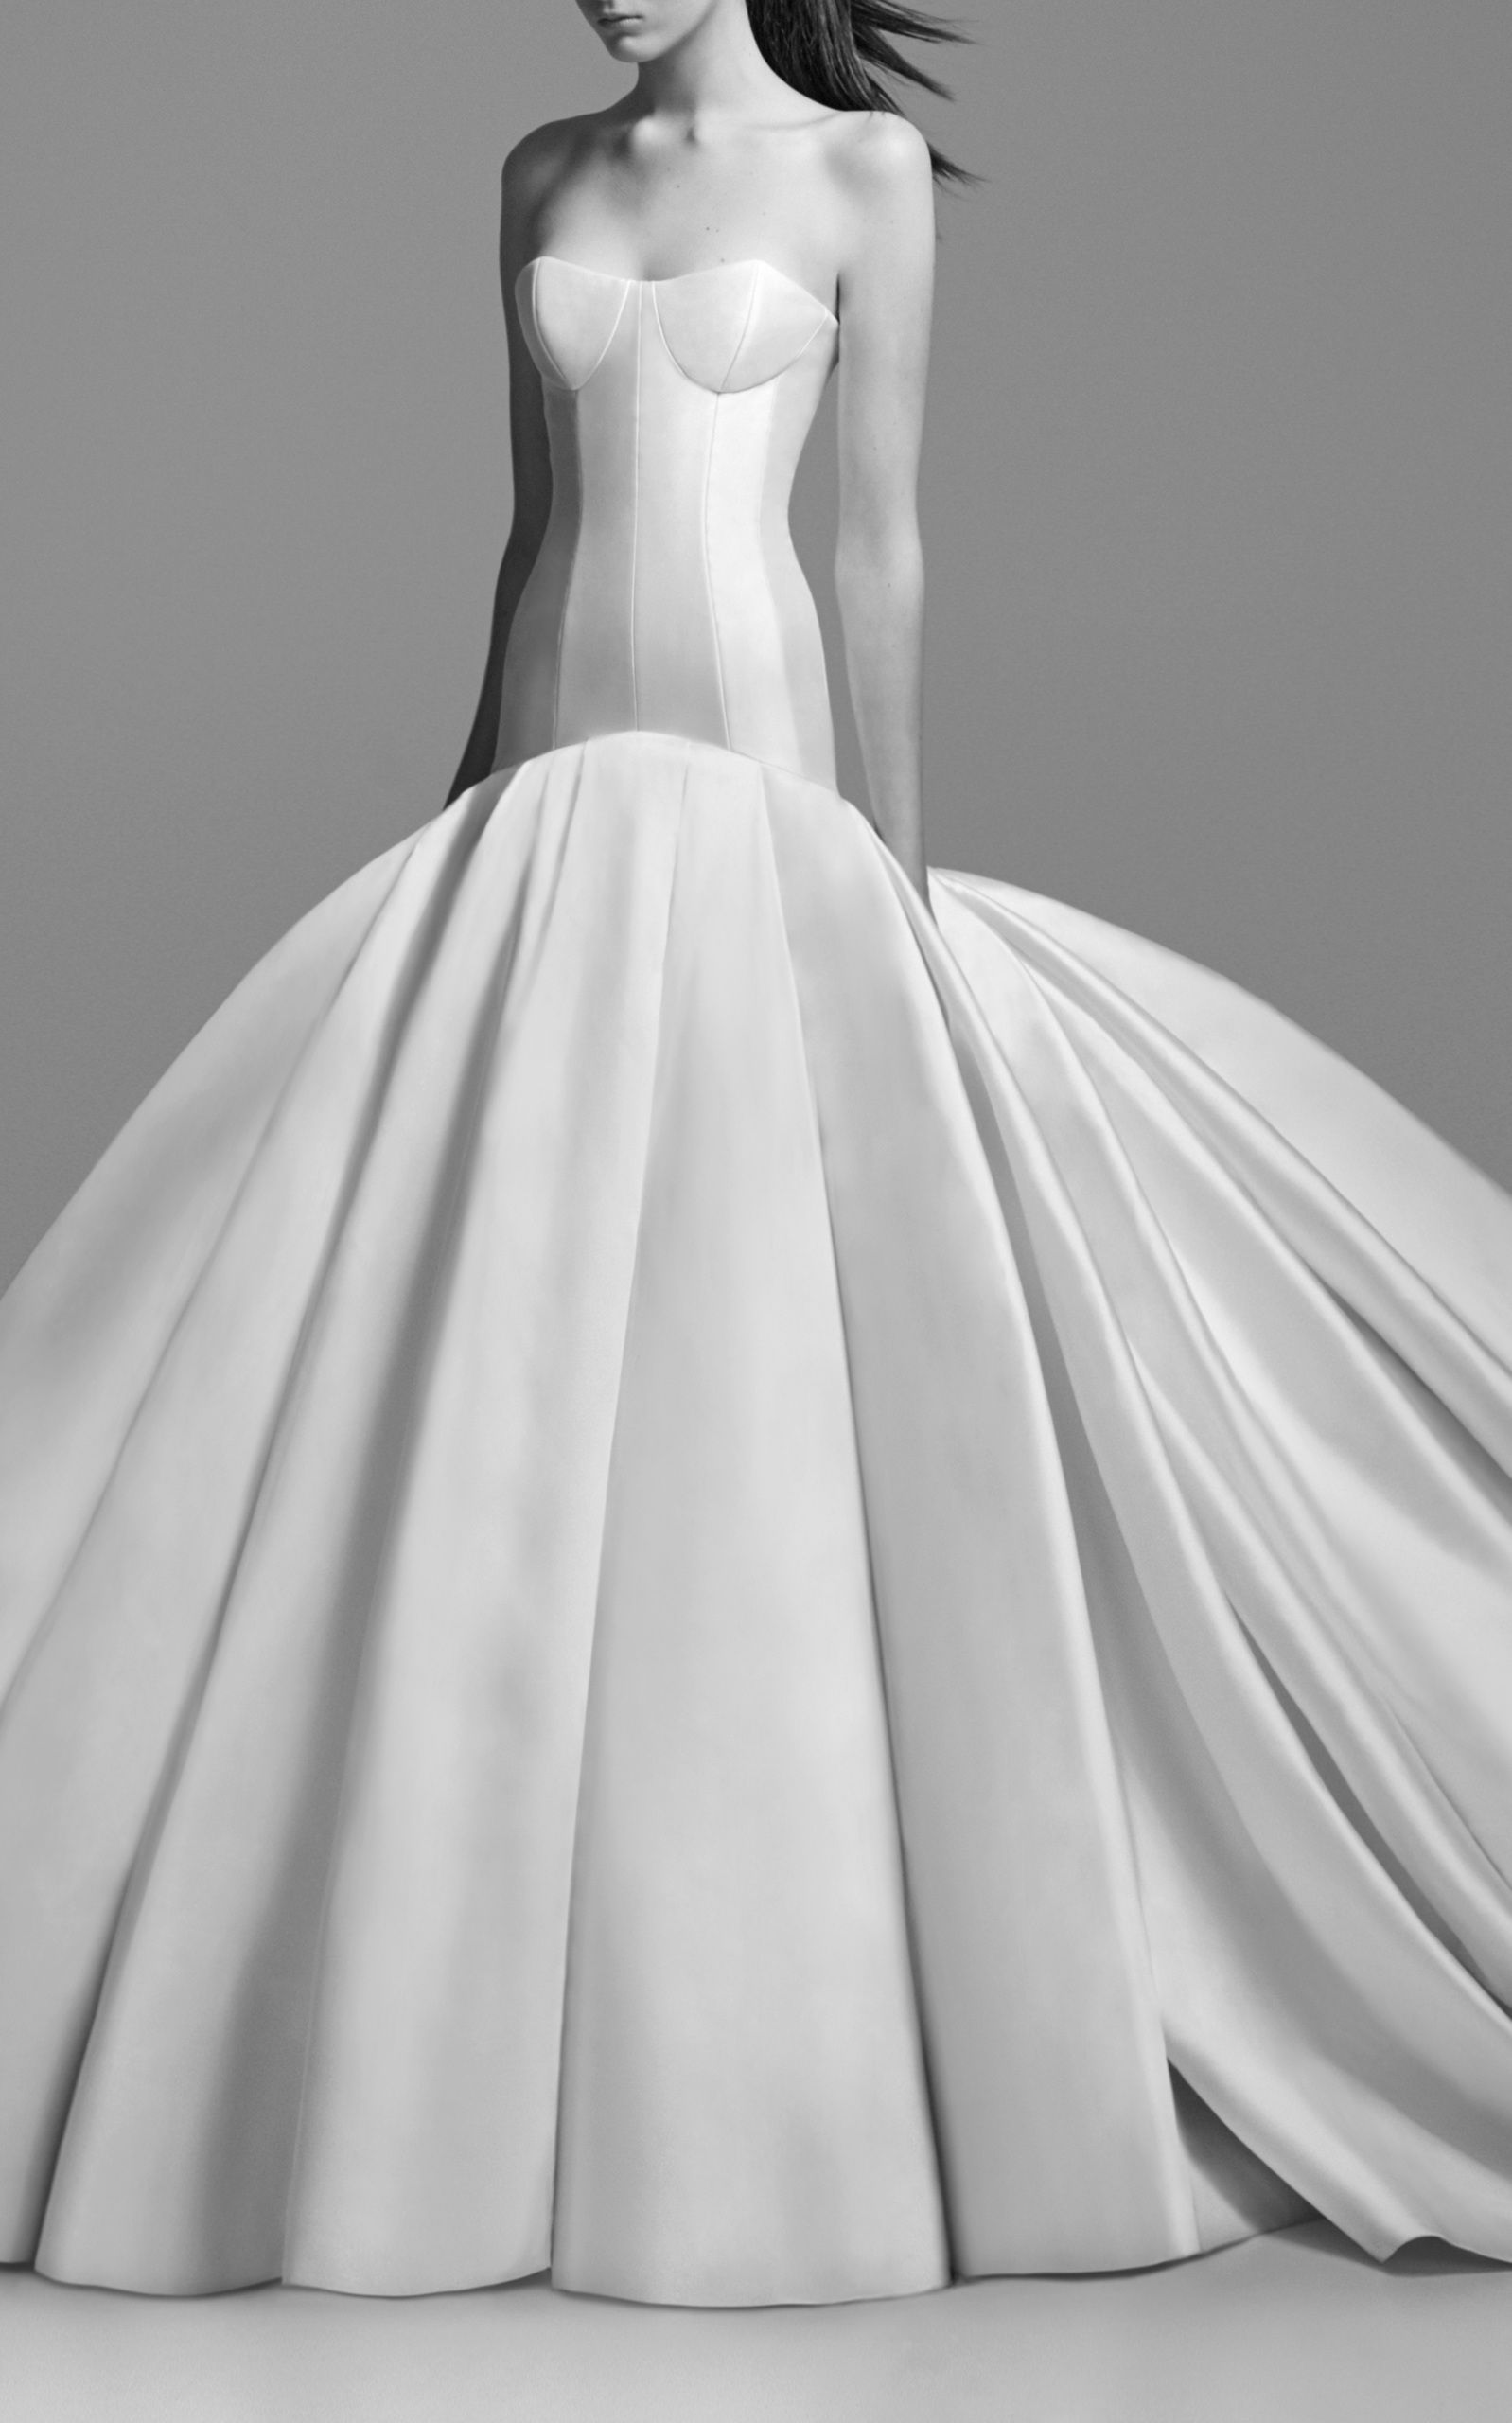 Christy strapless long line corset gown in bridal dress